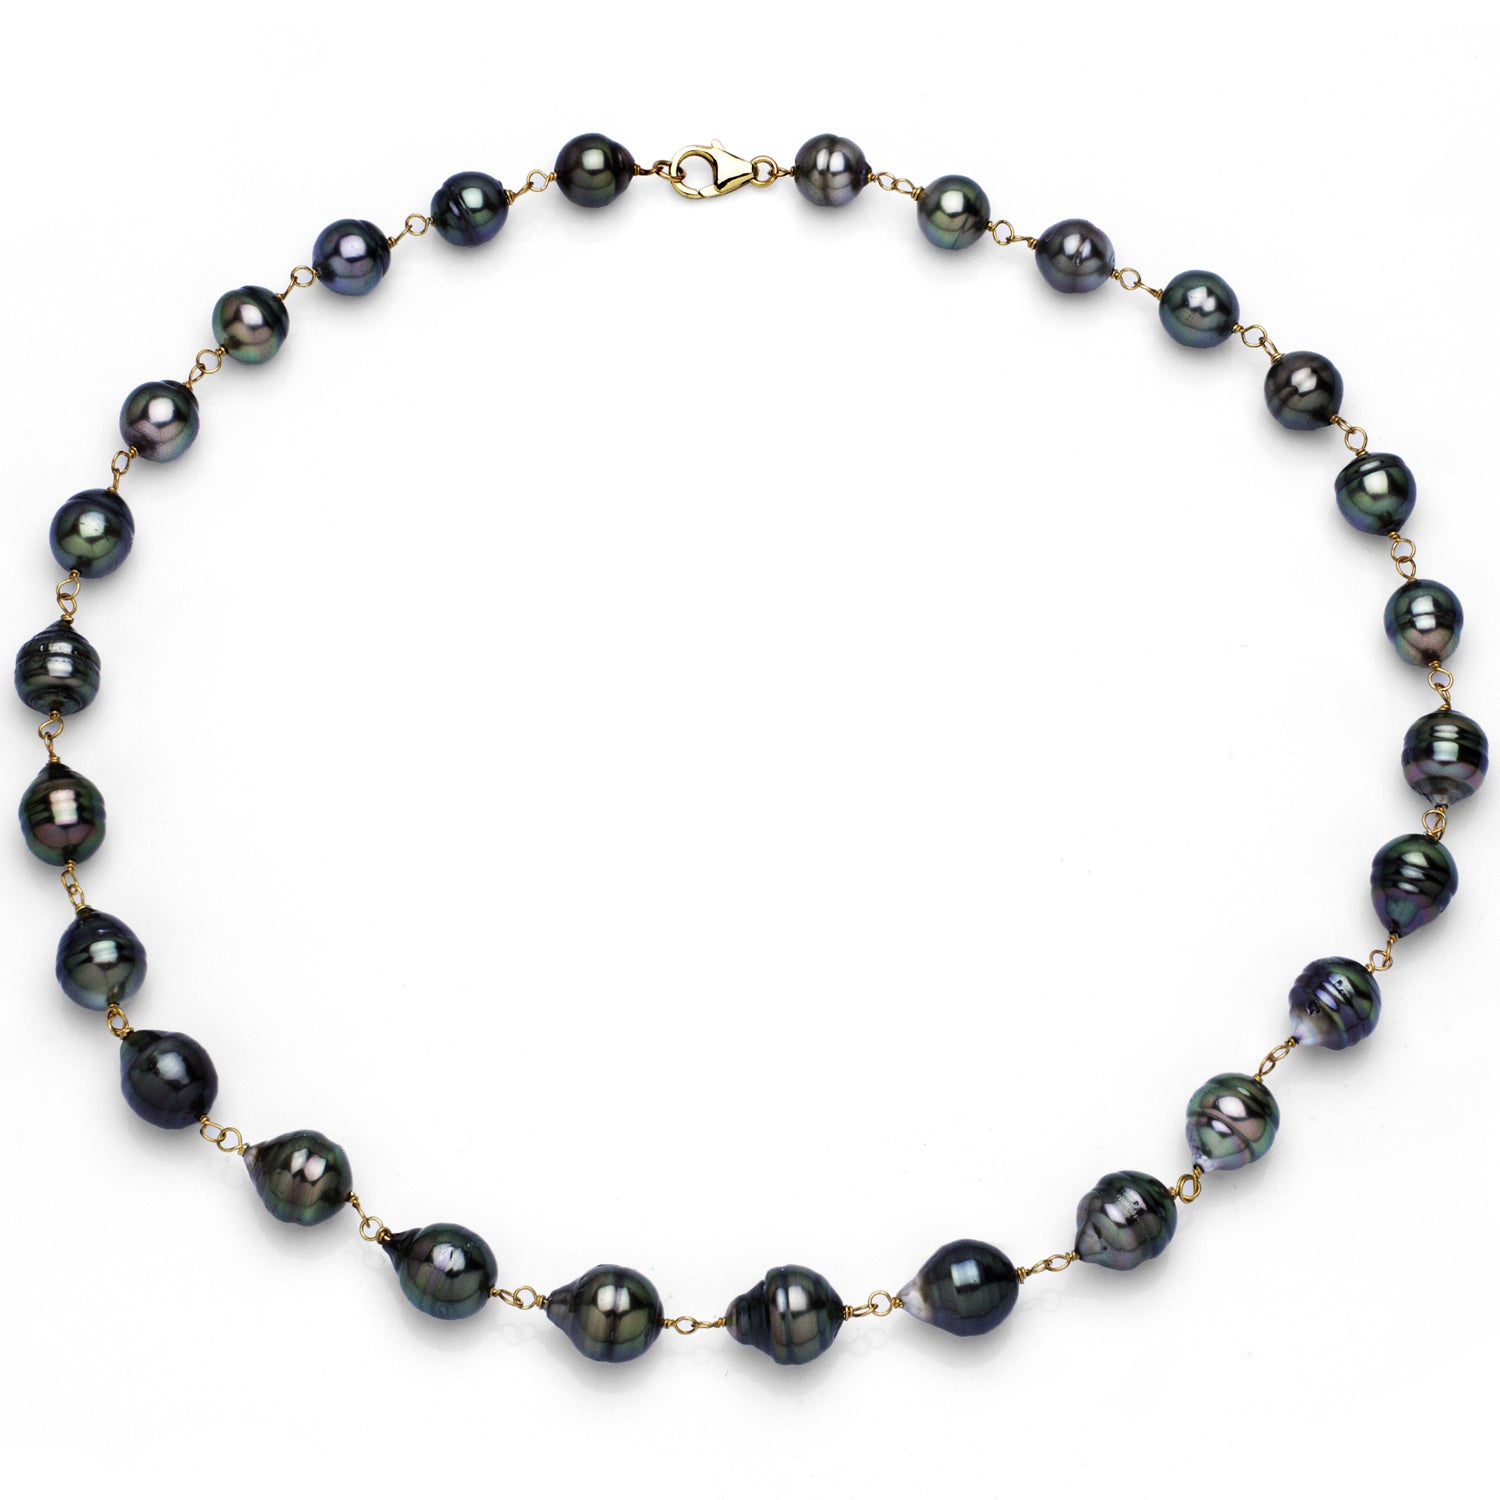 Cheap Pearl Necklace Sets: Cheap Black Pearl Jewelry Sets